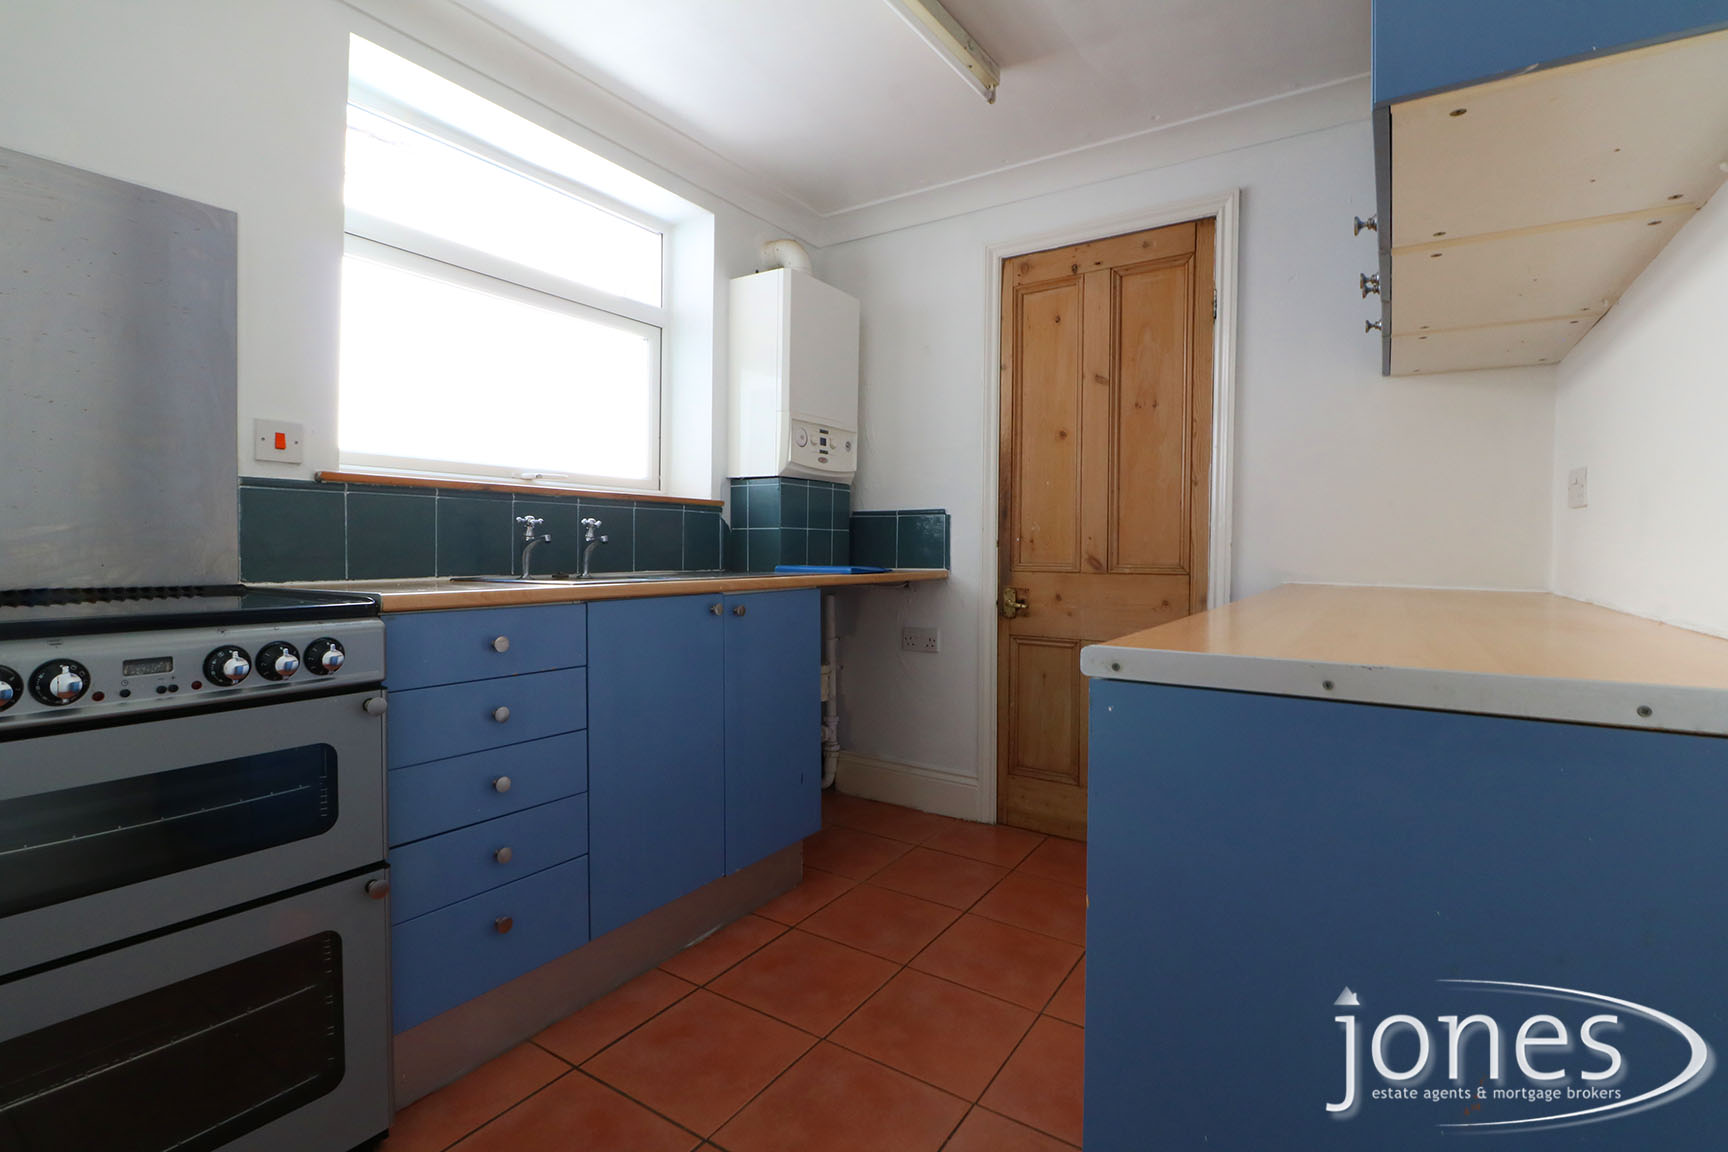 Home for Sale Let - Photo 05 Station Road Norton Stockton on Tees TS20 1PE